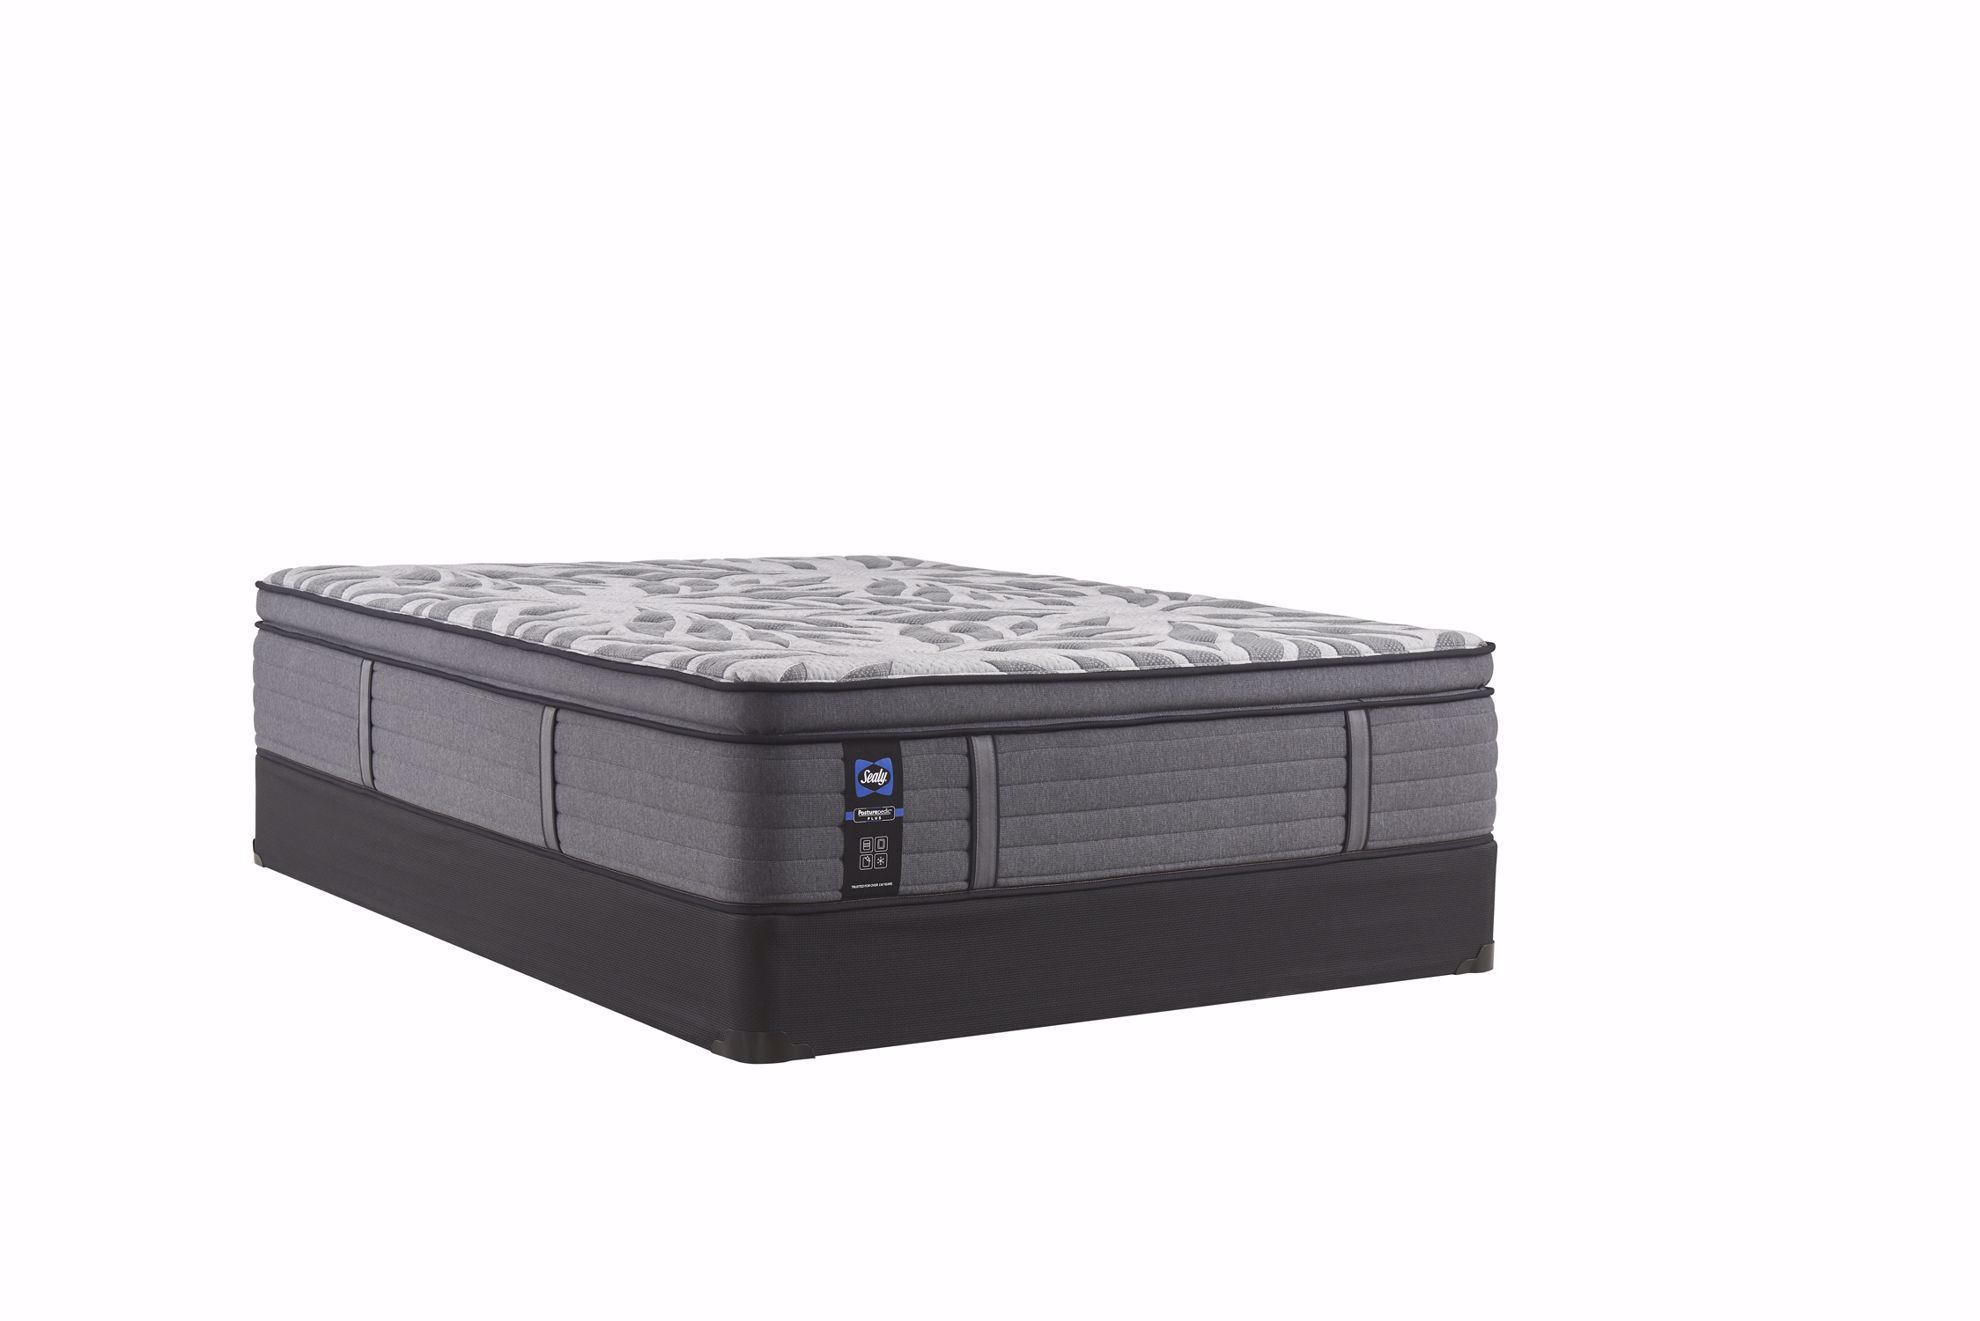 Picture of Sealy Posturepedic Plus Satisfied Plush Pillowtop Queen Mattress Set